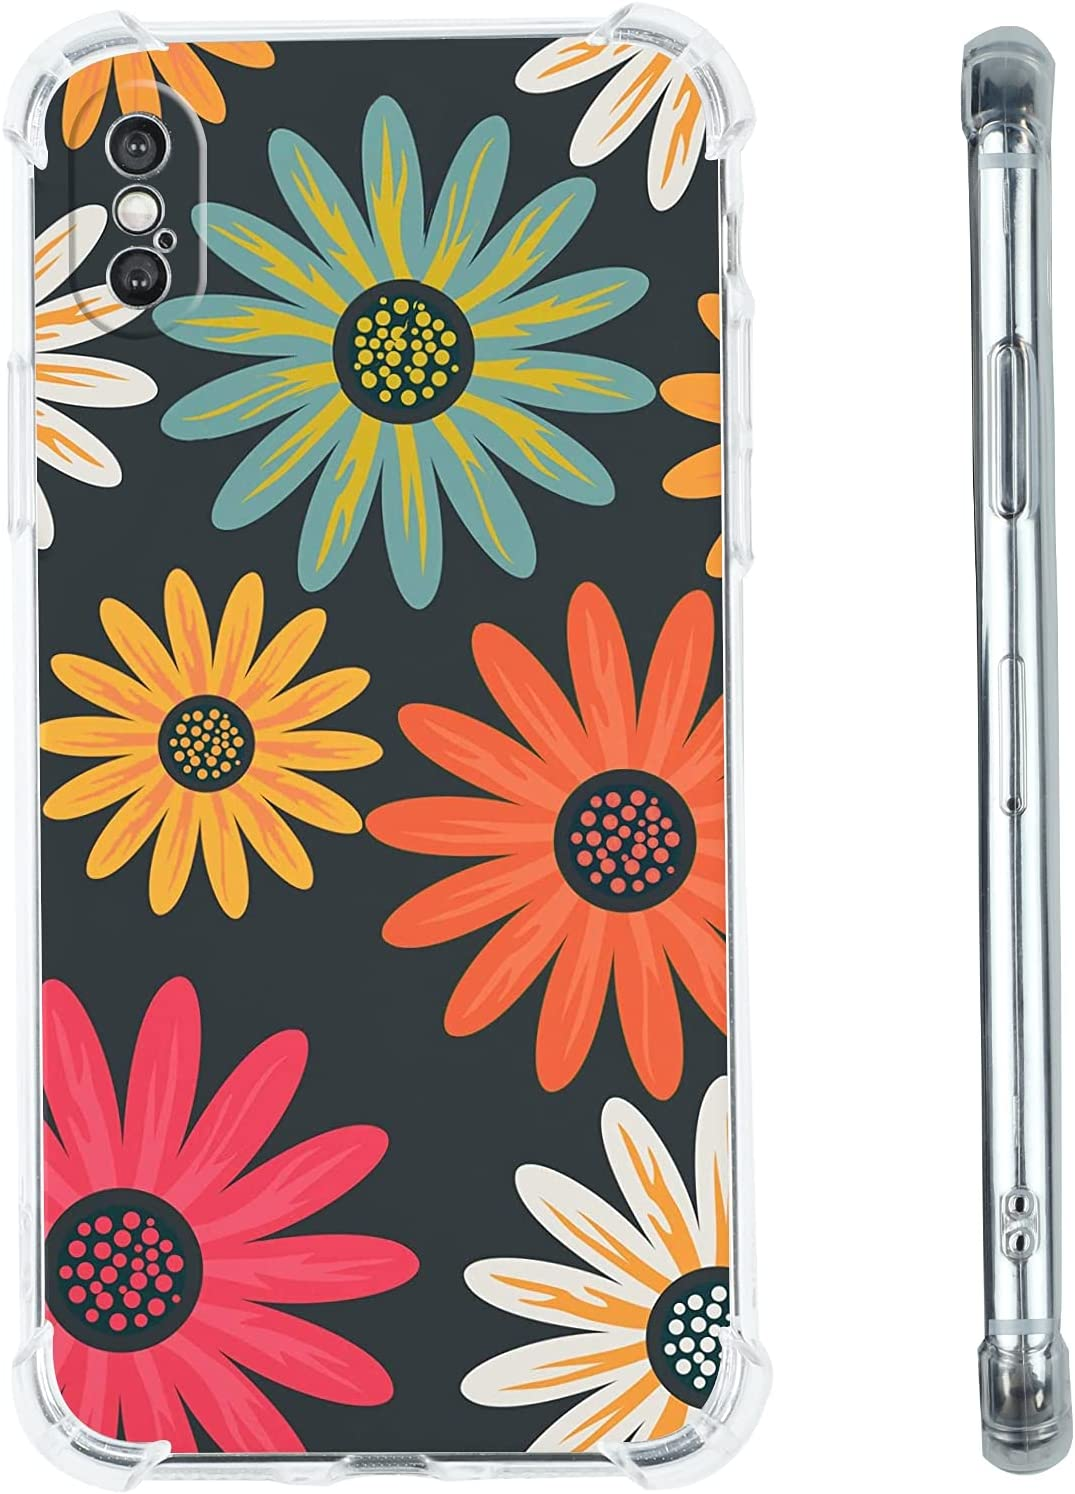 Daisy Flowers Phone Case for iPhone SE 2020/8/7,Cute Hippie Colorful Abstract Peace Sign Pattern iPhone SE 2020/8/7 Case for Women/Girl,Soft TPU Bumper Cool Trendy Gift Cover Case for Apple iPhone